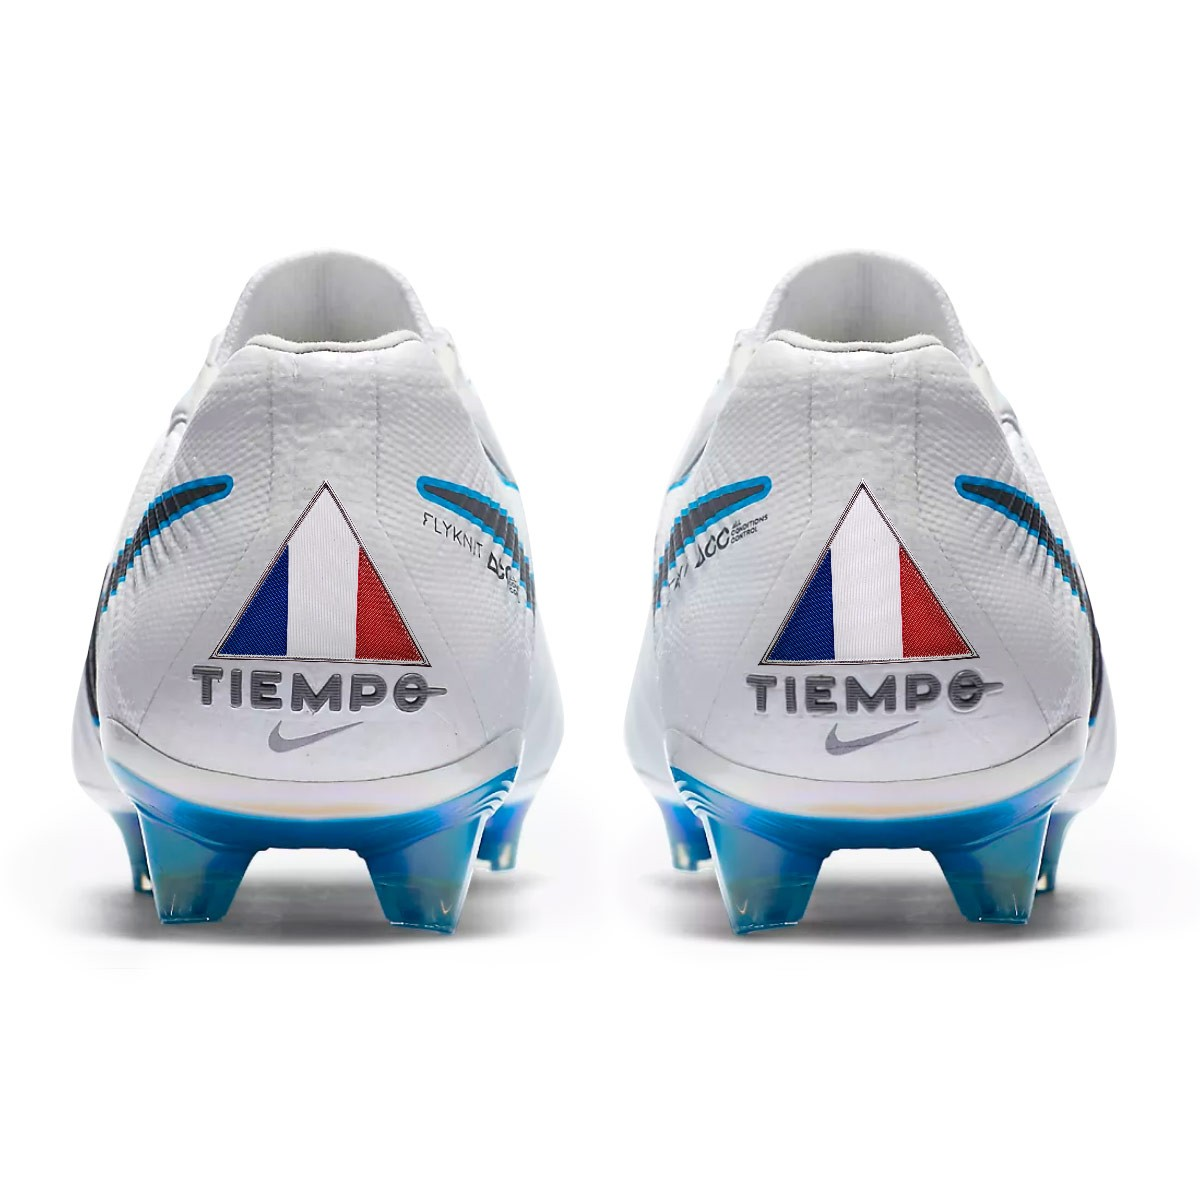 reputable site a48e4 34b8d Football Boots Nike Tiempo Legend VII Elite FG White-Metallic cool grey-Blue  hero - Football store Fútbol Emotion